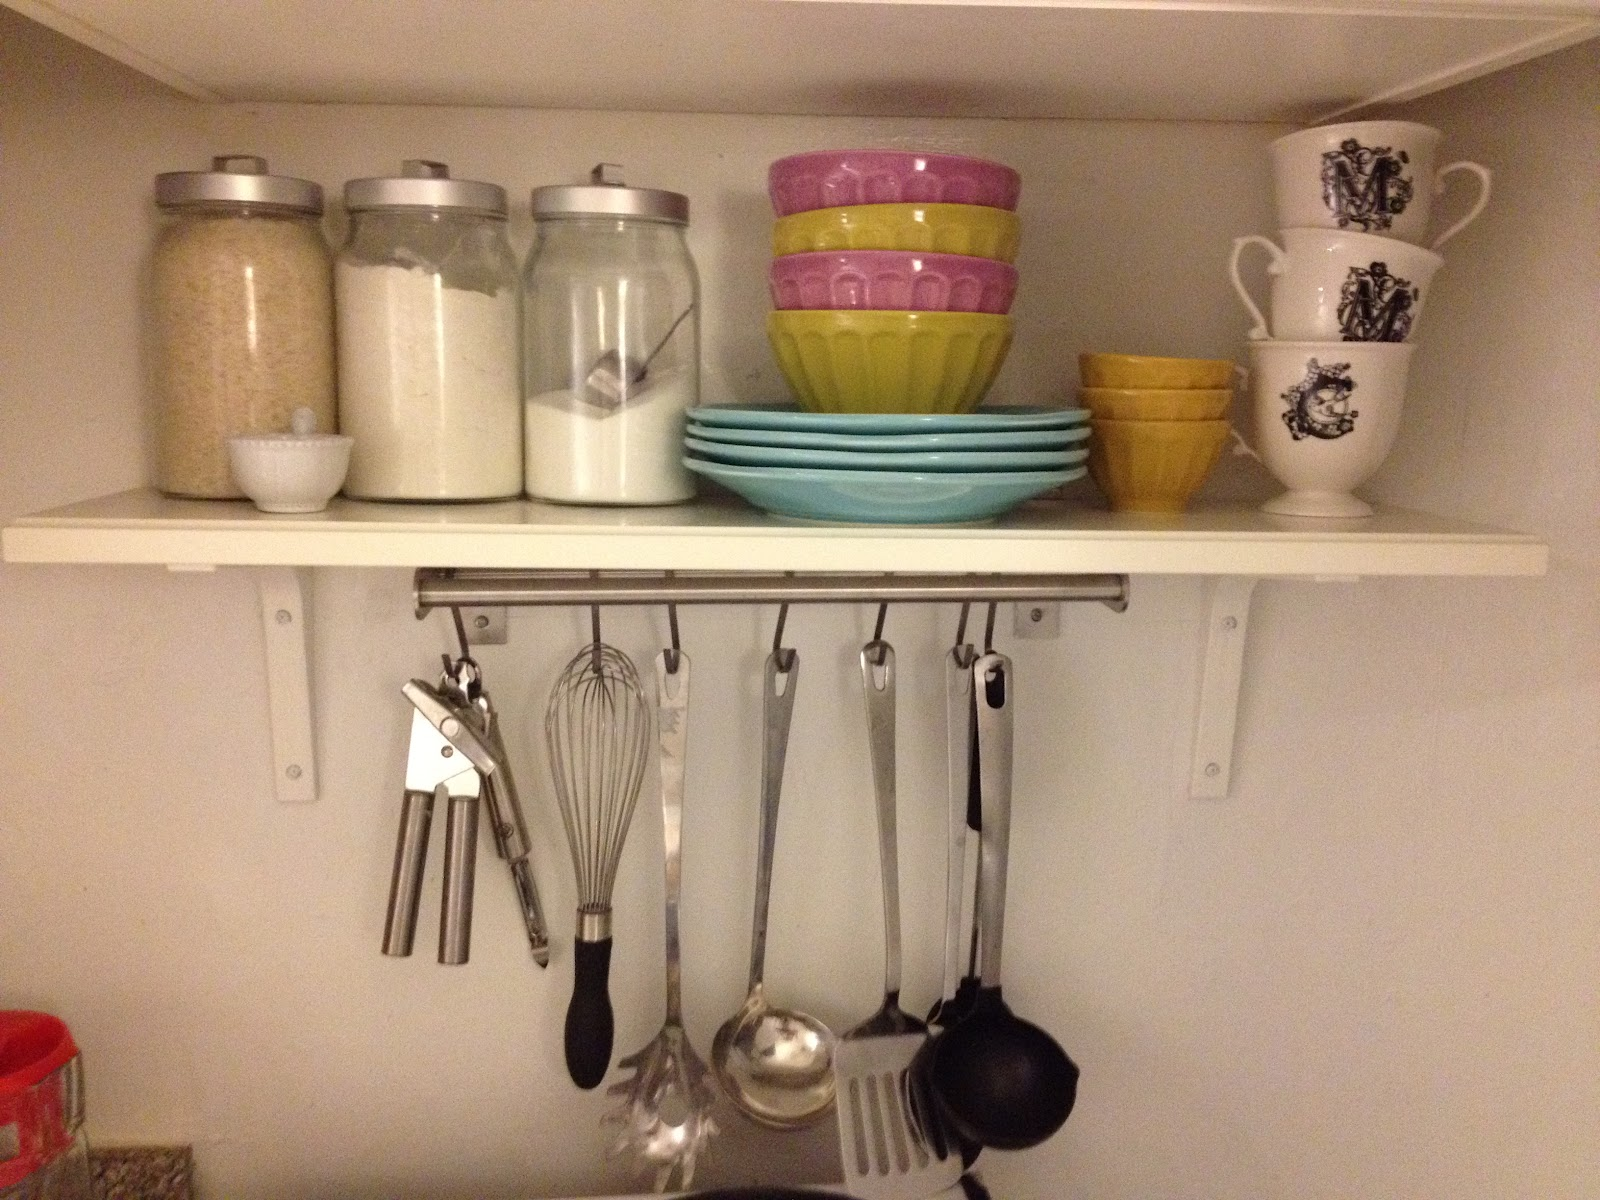 Claire crisp diy small kitchen organizing ideas - Kitchen diy ideas ...